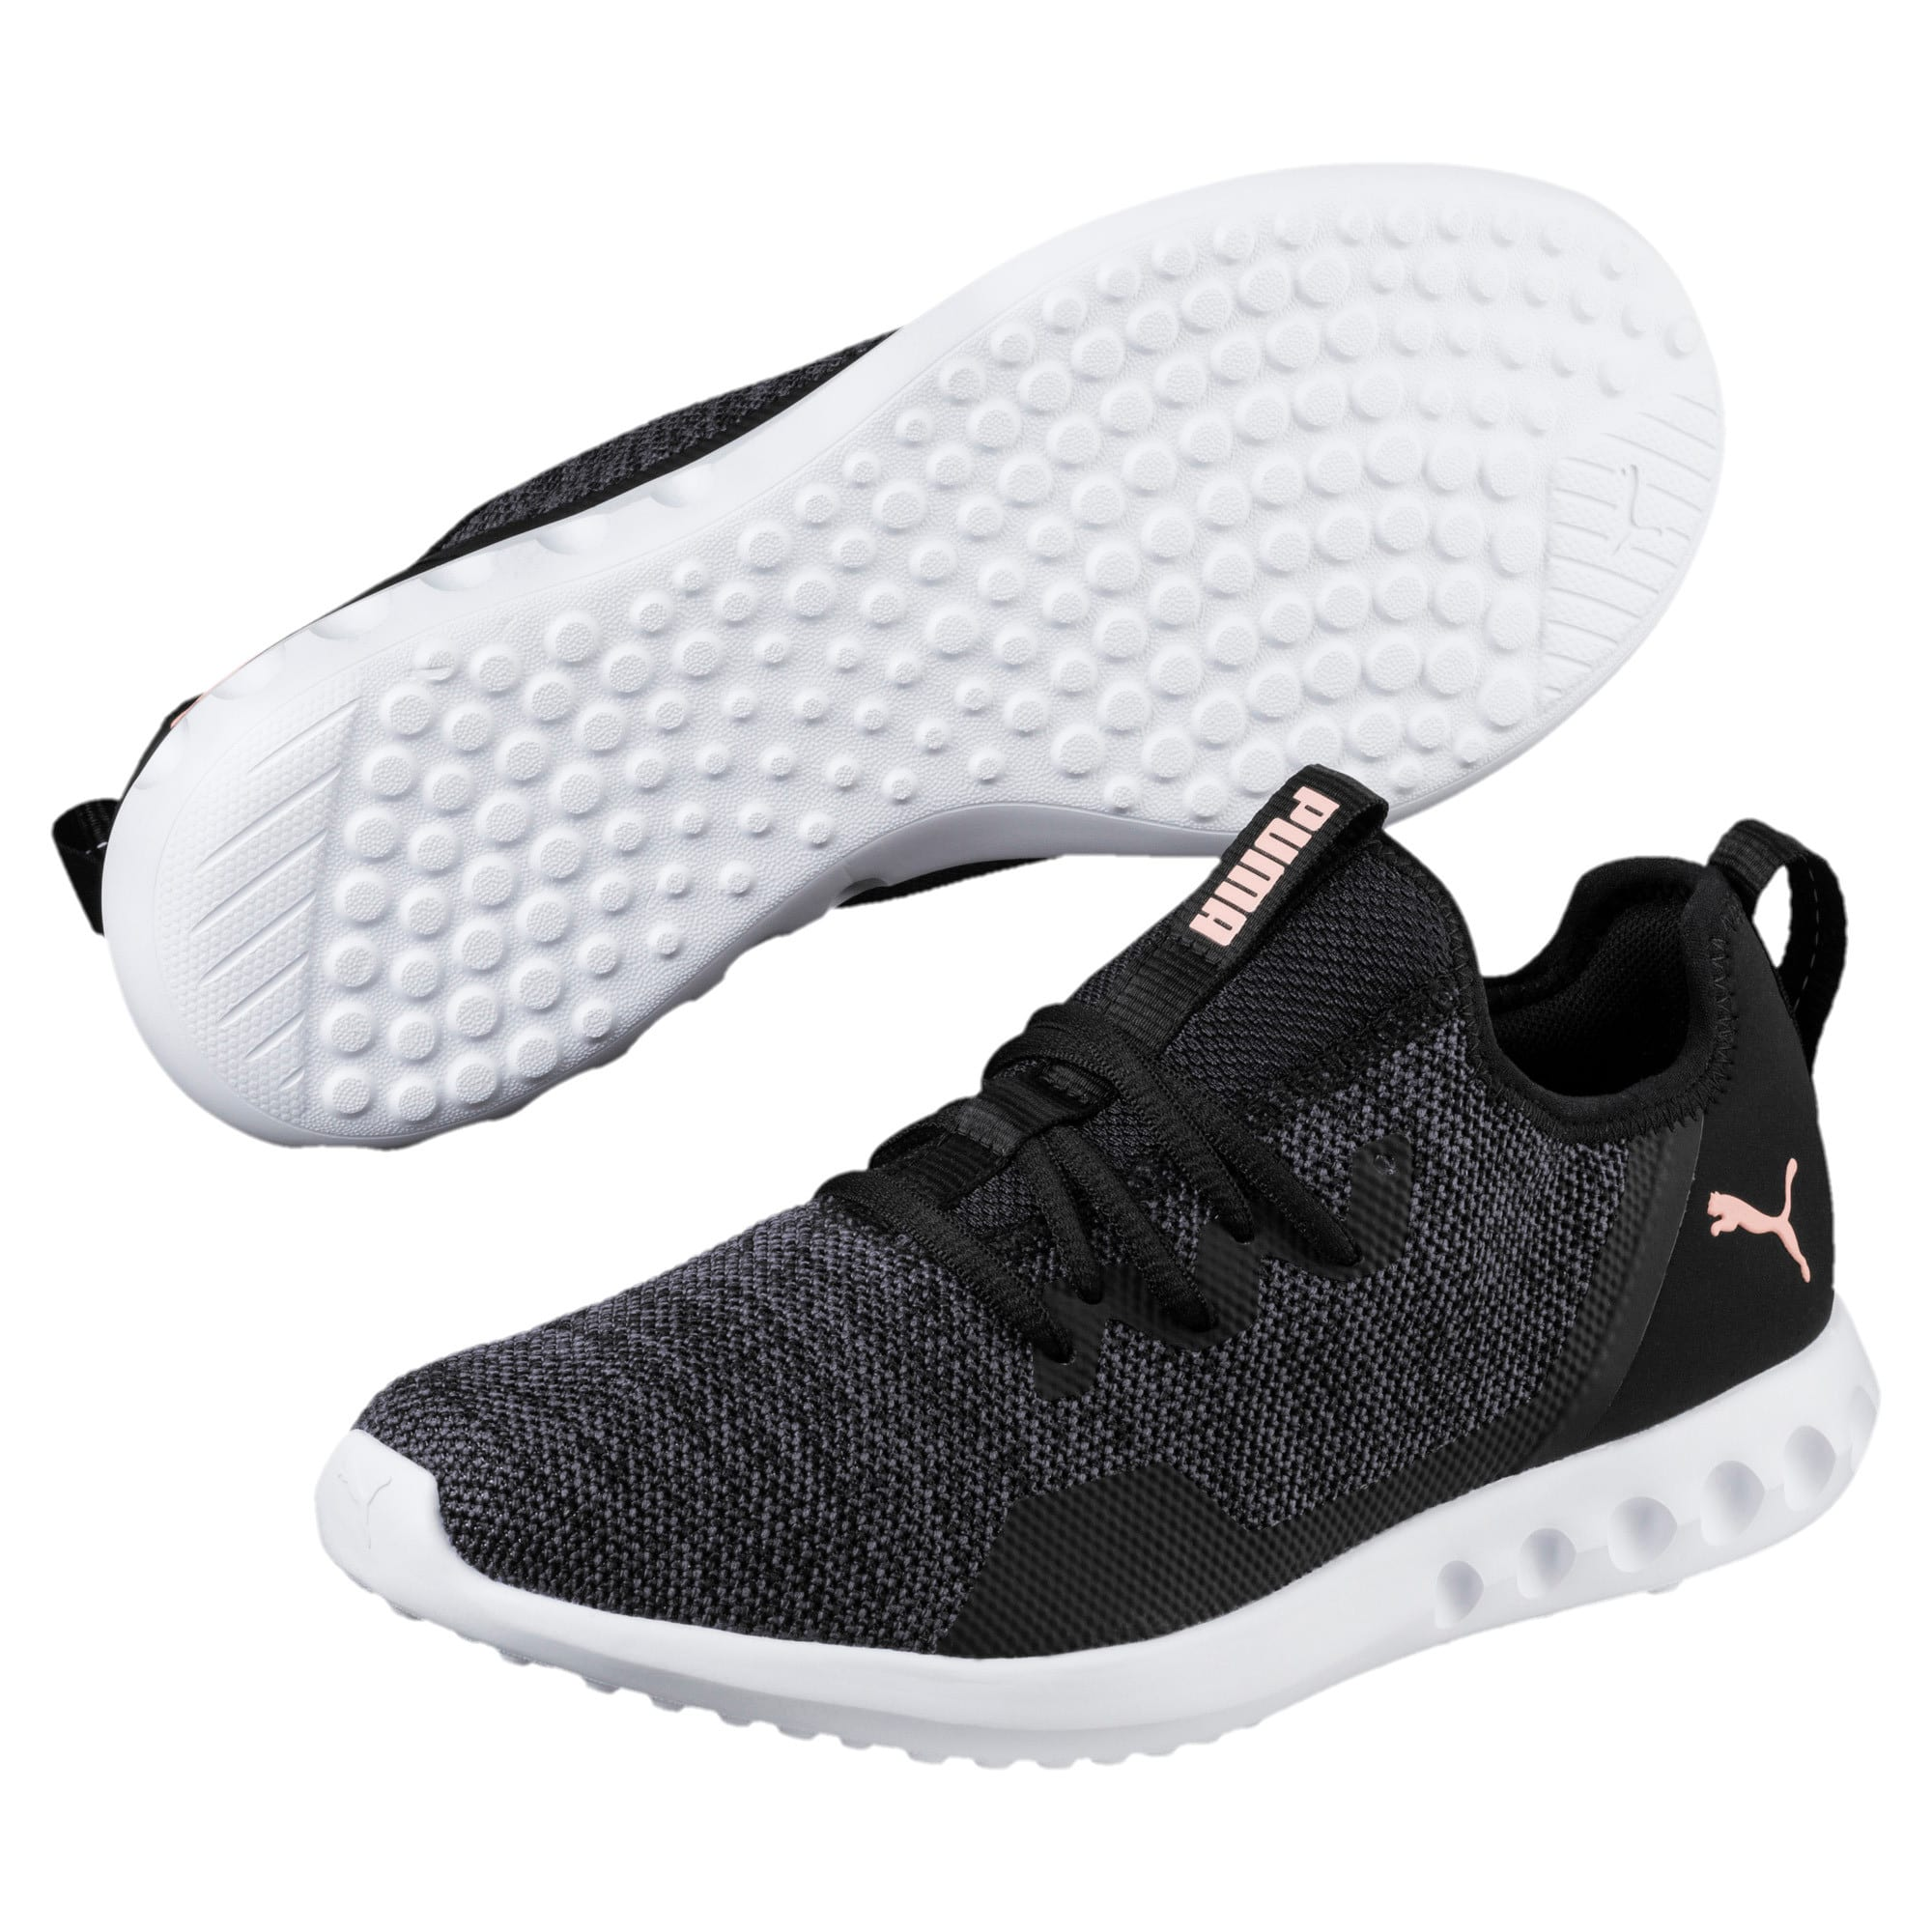 Thumbnail 1 of Carson 2 X Knit Women's Running Shoes, Puma Black-Periscope, medium